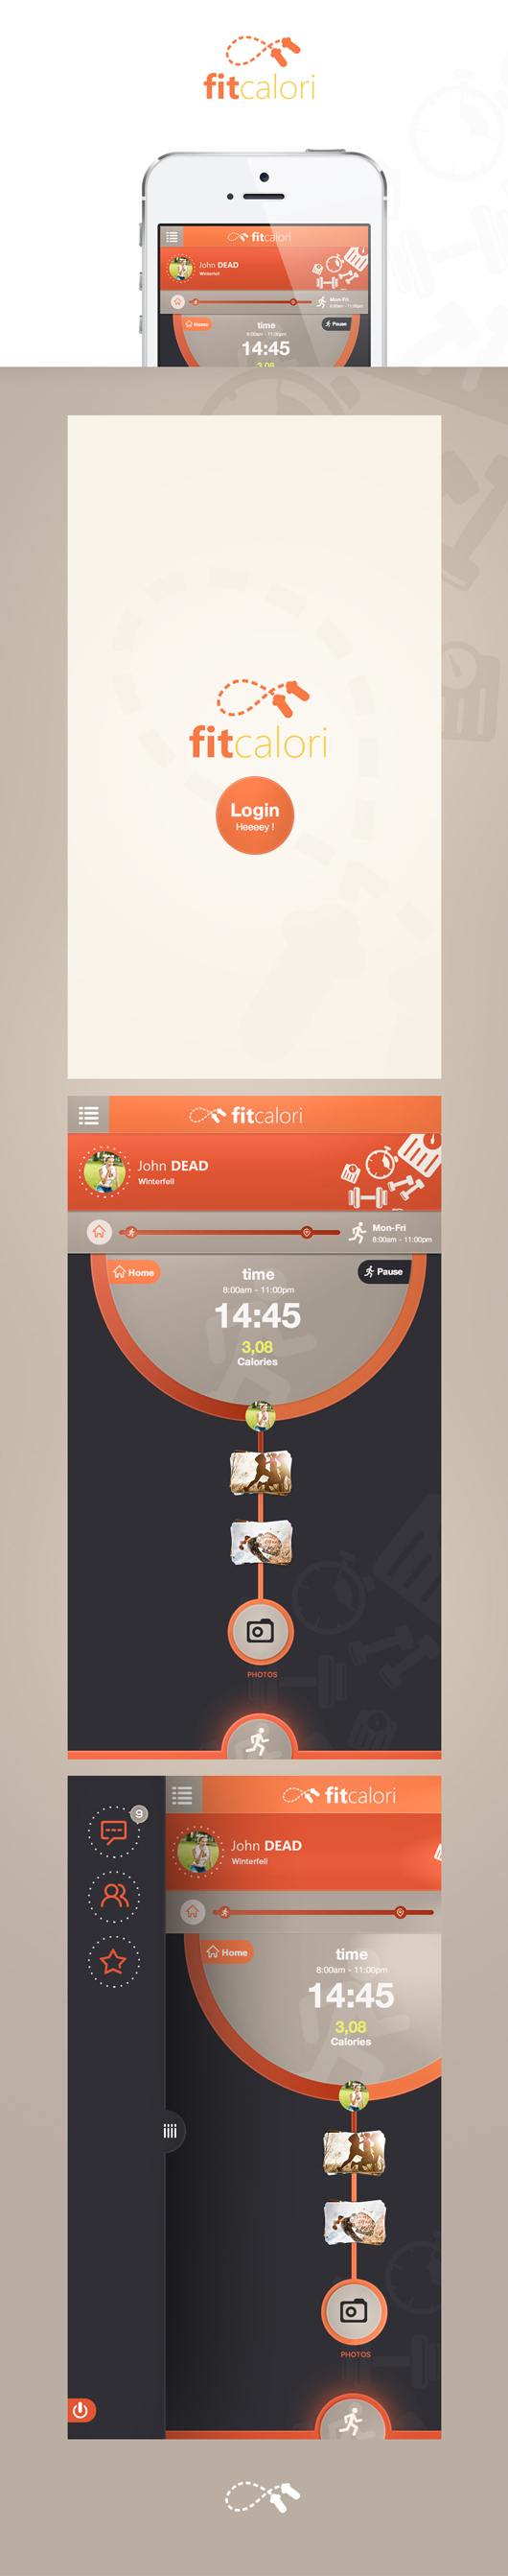 iPhone App UI Designs